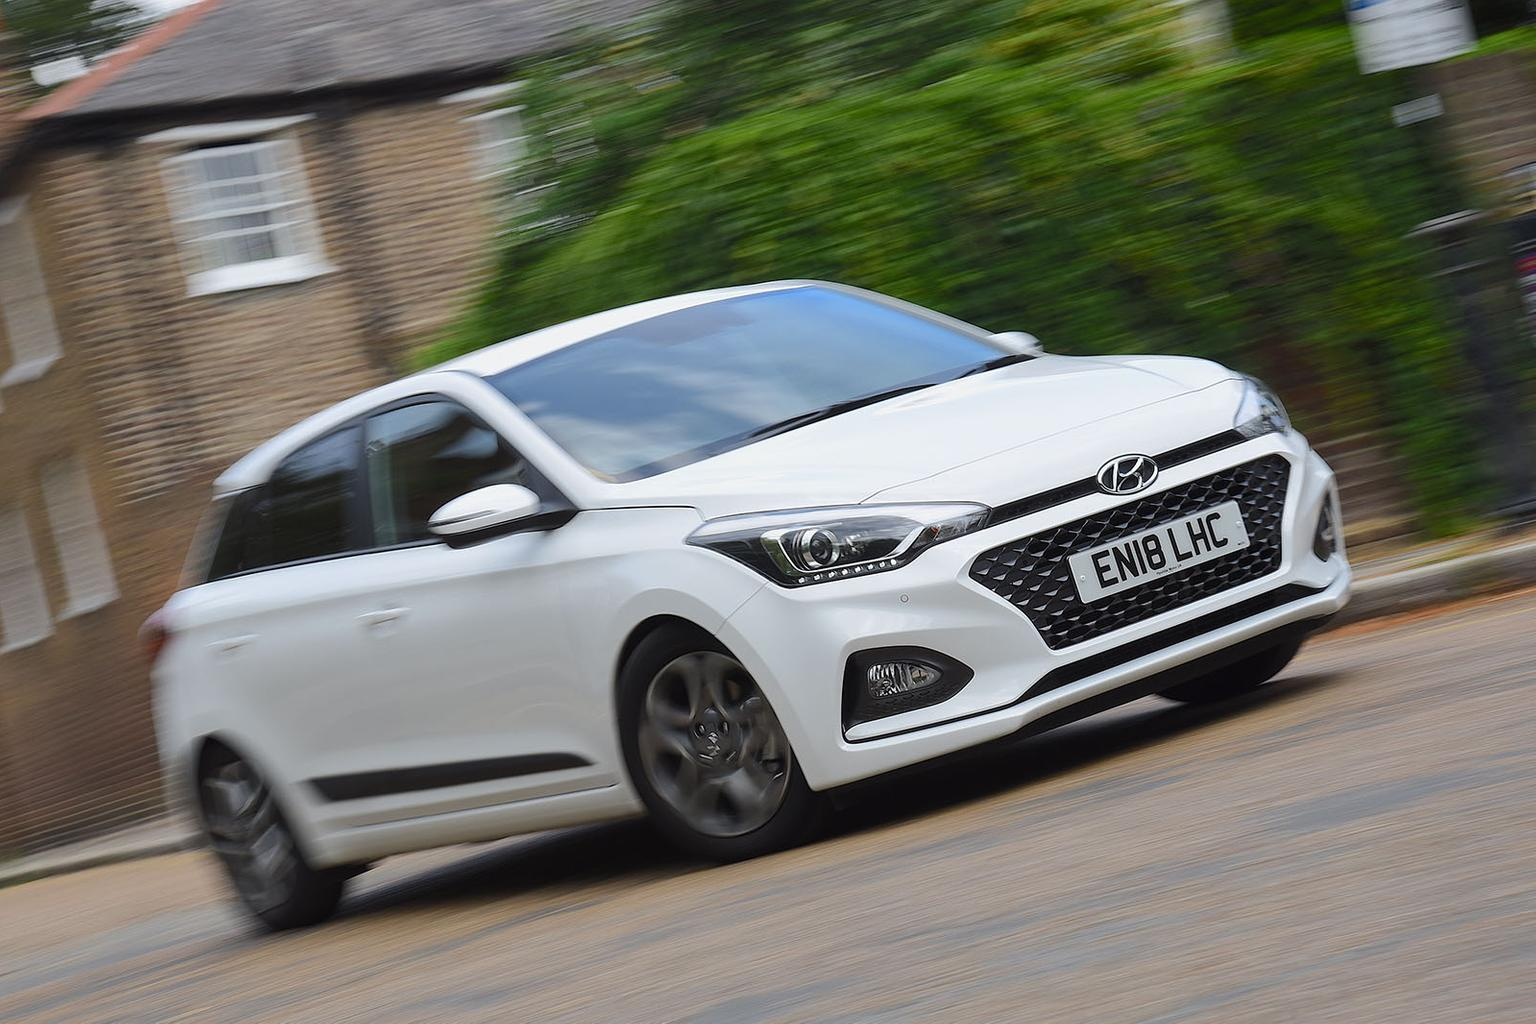 New Hyundai i20 vs Seat Ibiza